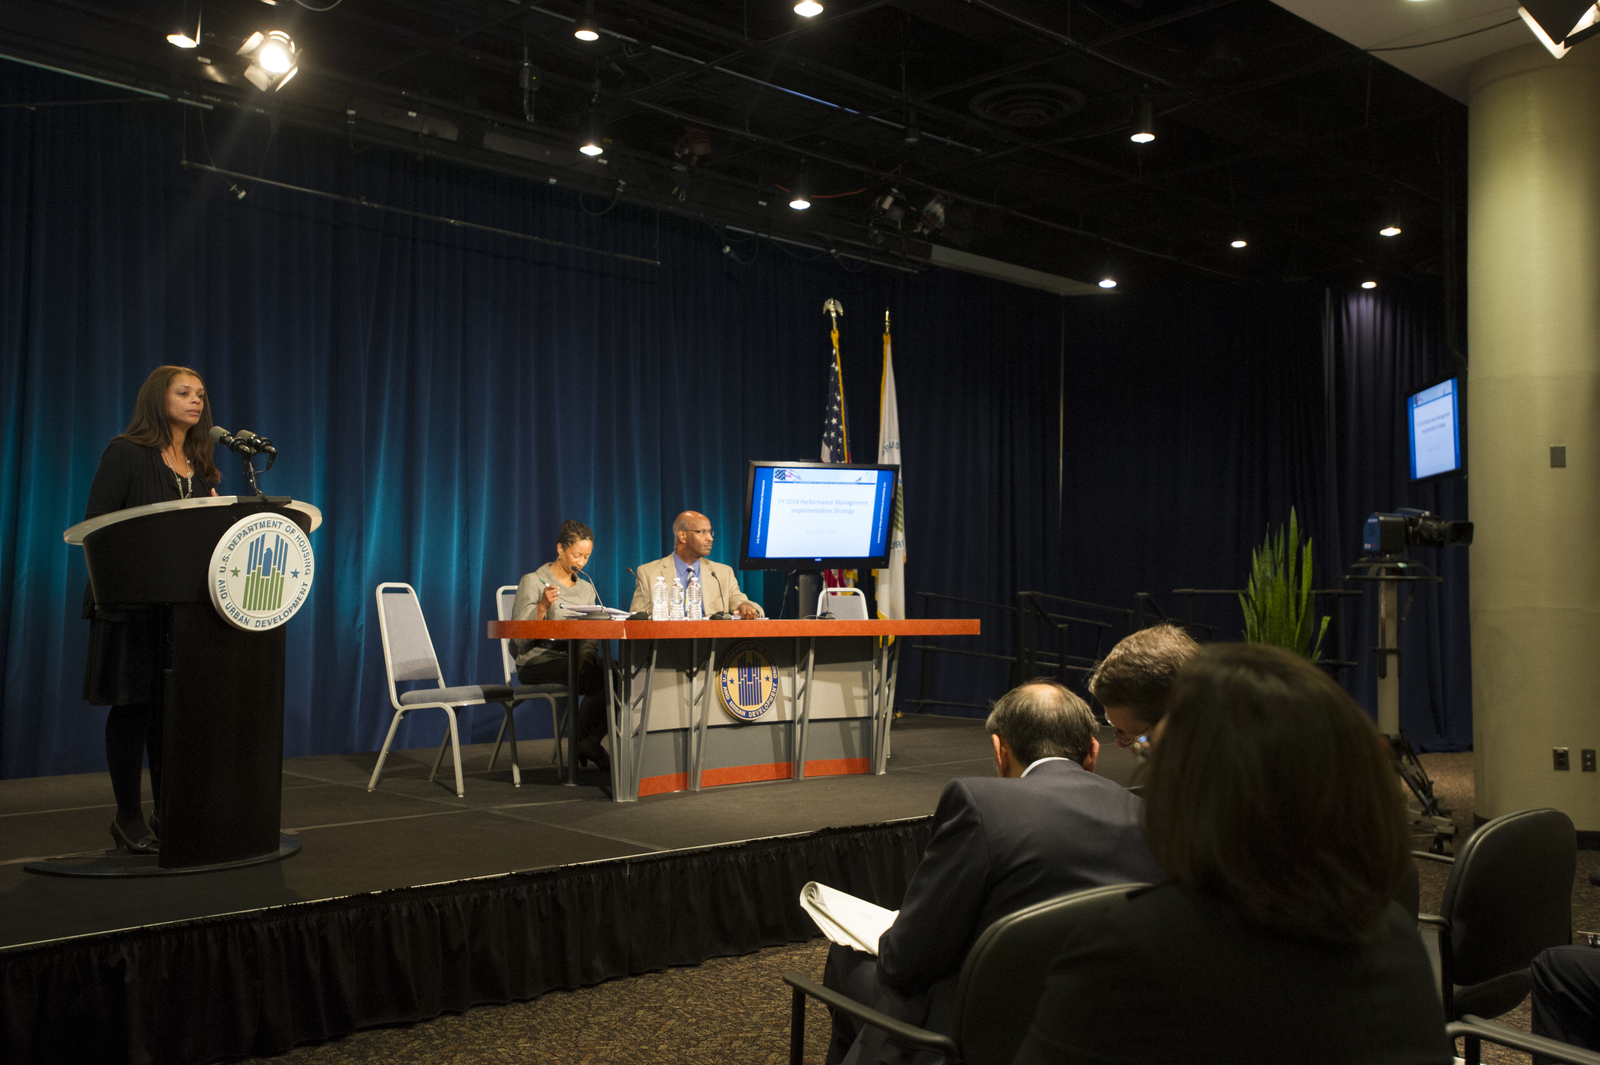 Office of Community Planning and Development (CPD) All Hands Meeting, [with Secretary Shaun Donovan joining Acting Assistant Secretary for CPD, Mark Johnston, CPD General Deputy Secretary Cliff Taffet, and other senior CPD officials among the speakers]